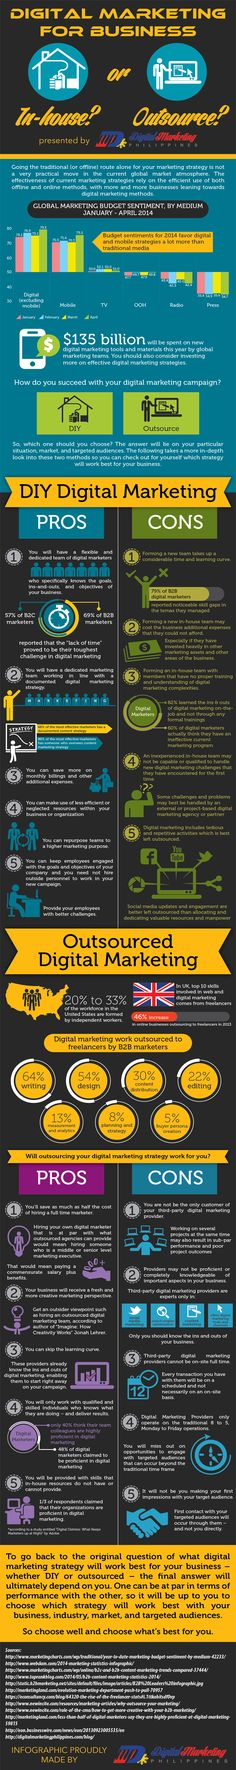 Digital Marketing for Business – In-house or Outsource? (Infographic)